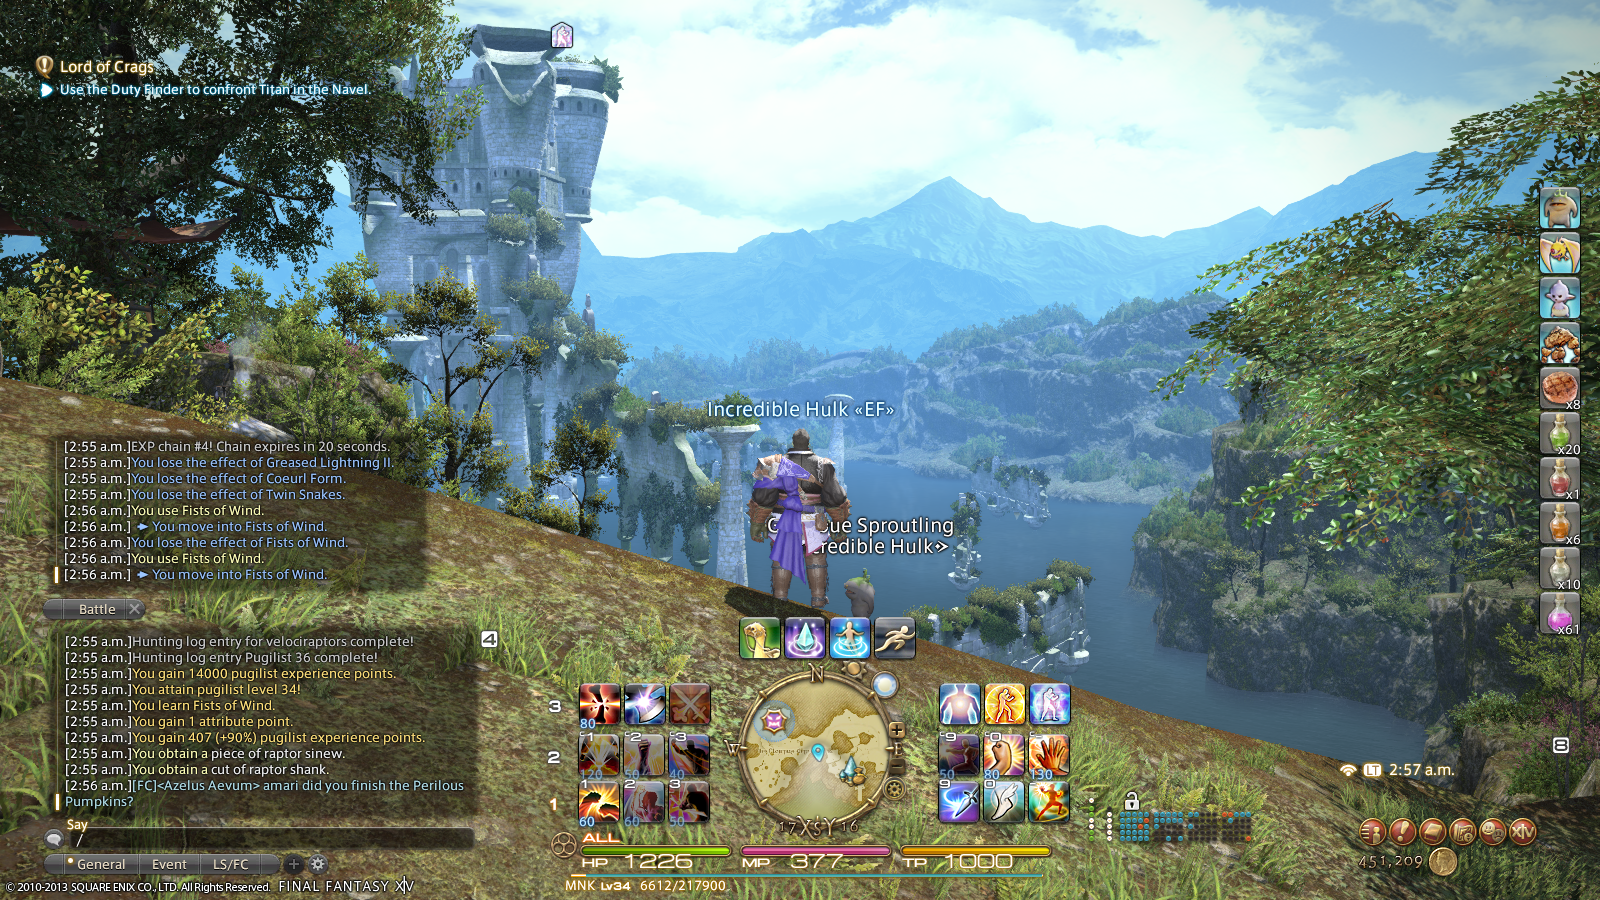 omnipotent ffxiv make petbar command toggle your visibility pictures remember anyone post know